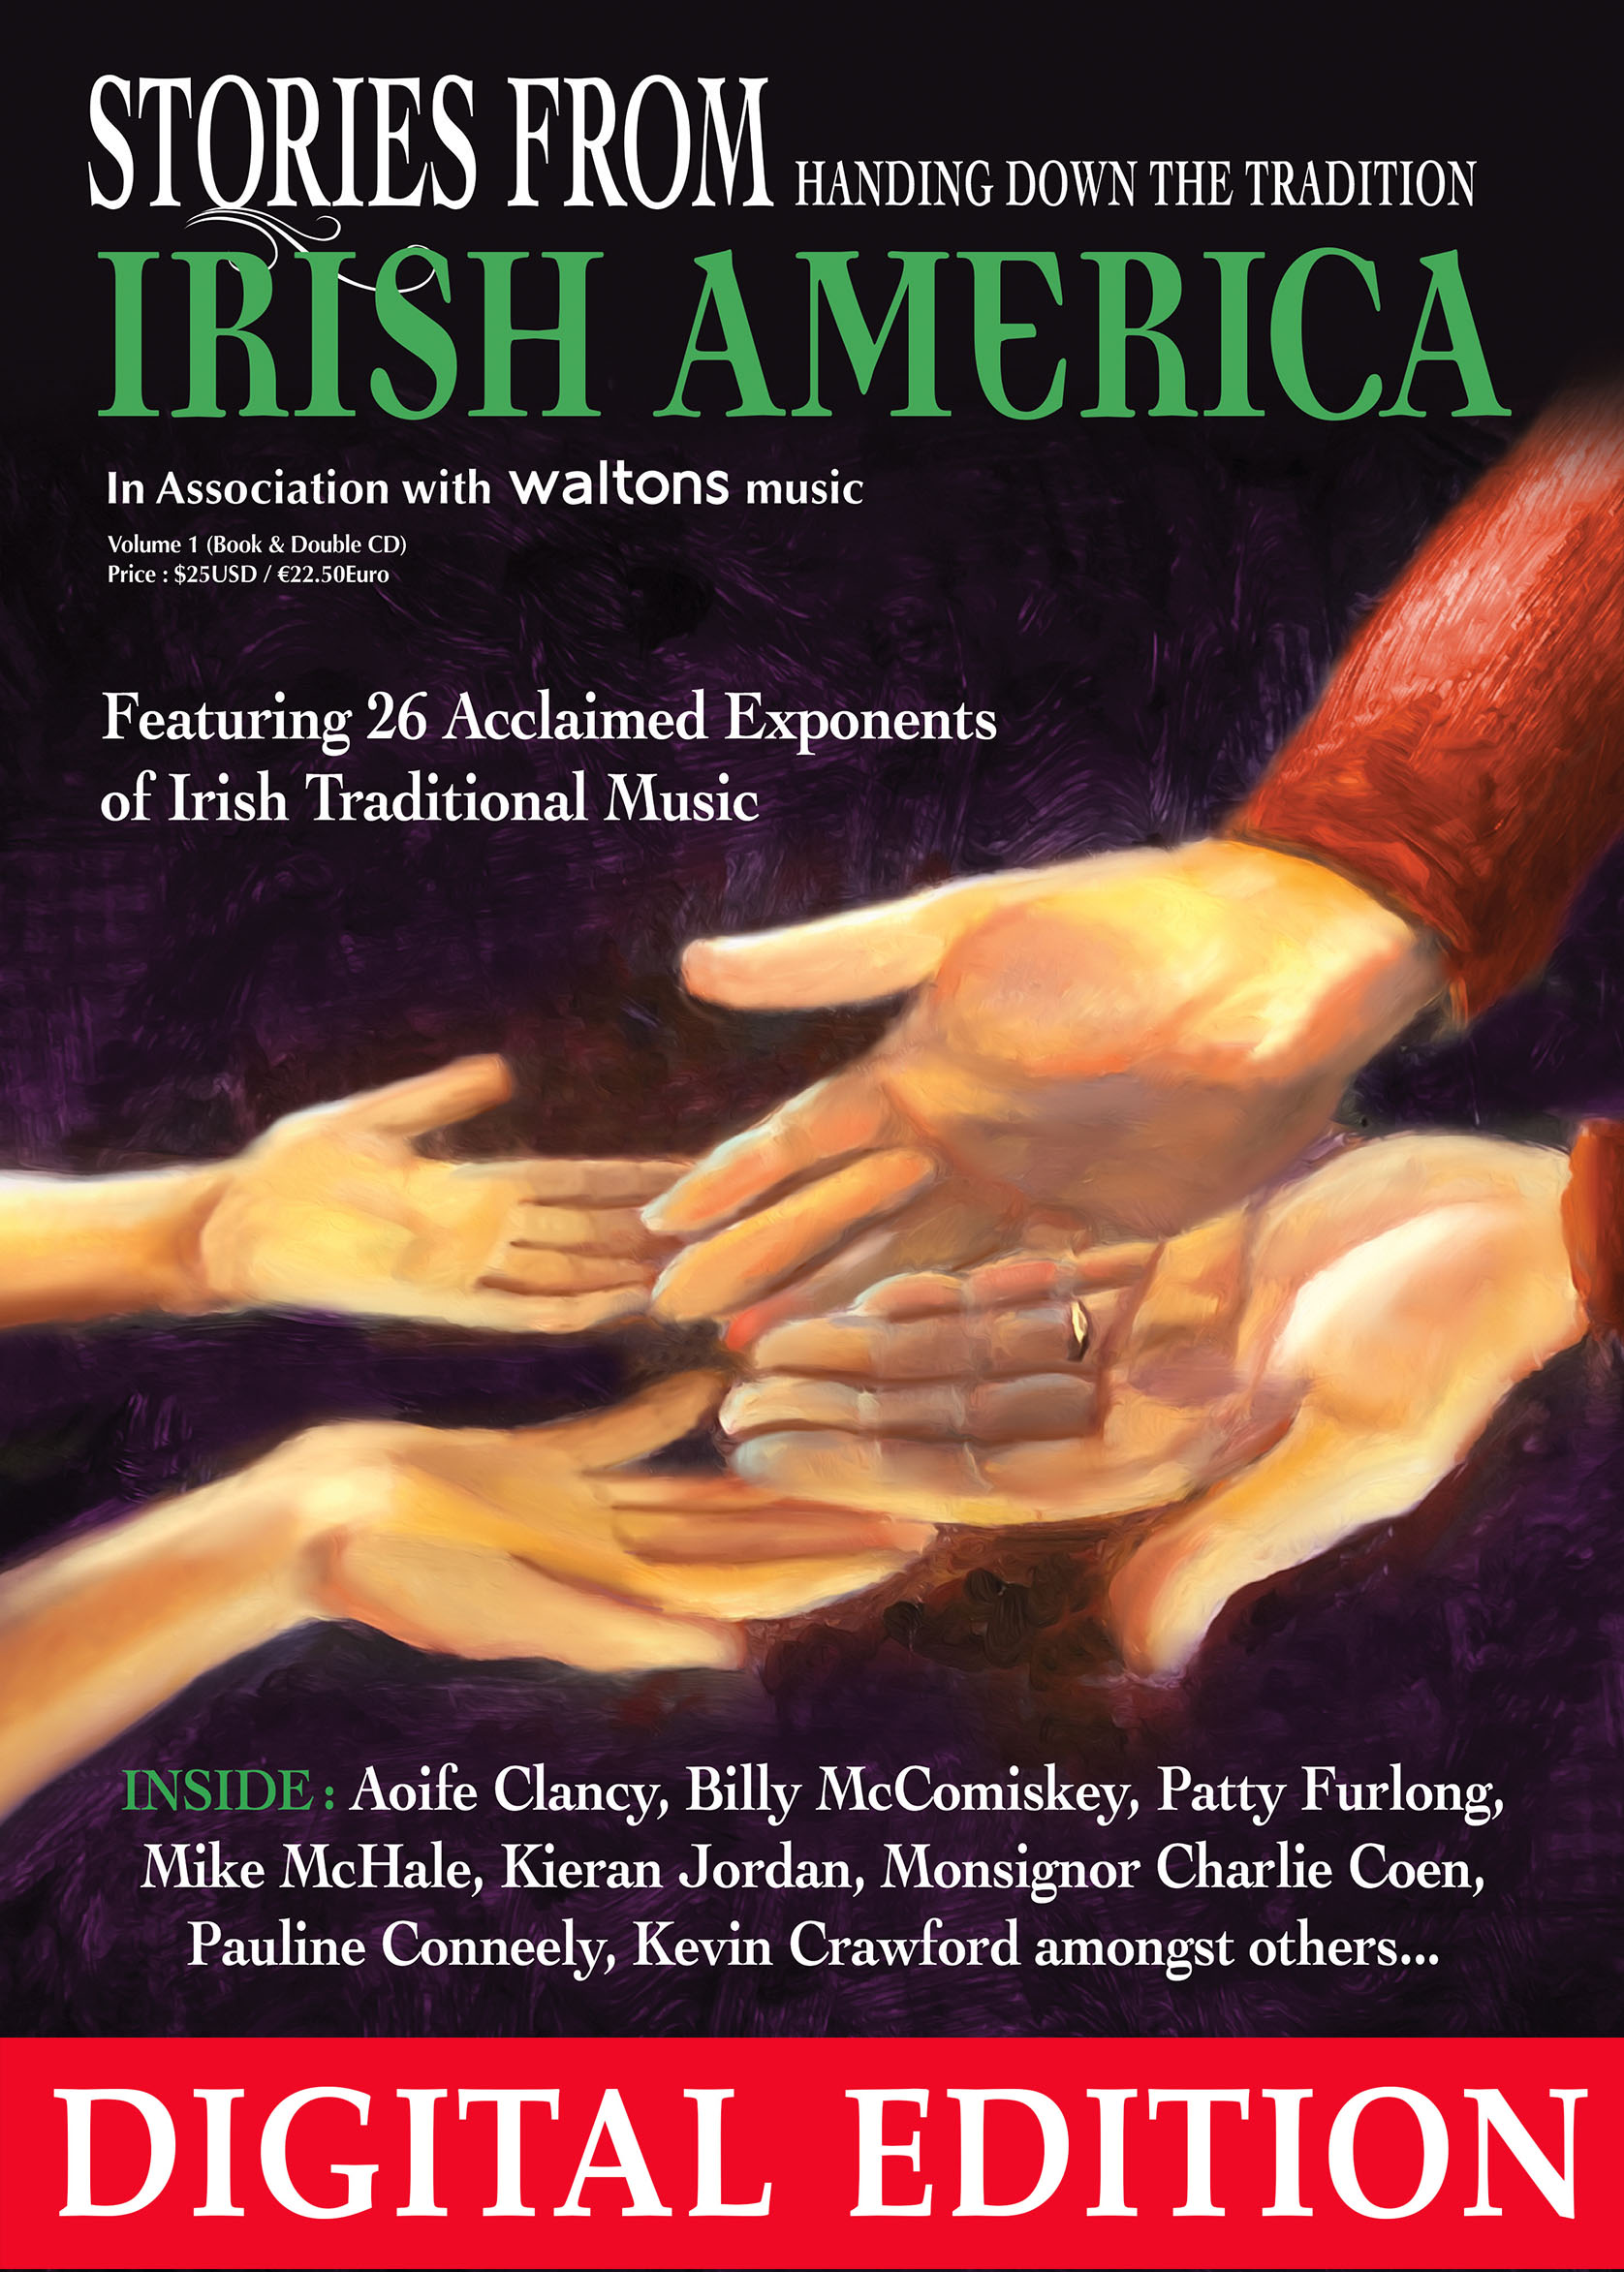 Stories from Irish America Volume 1 Book & Double CD Digital Edition